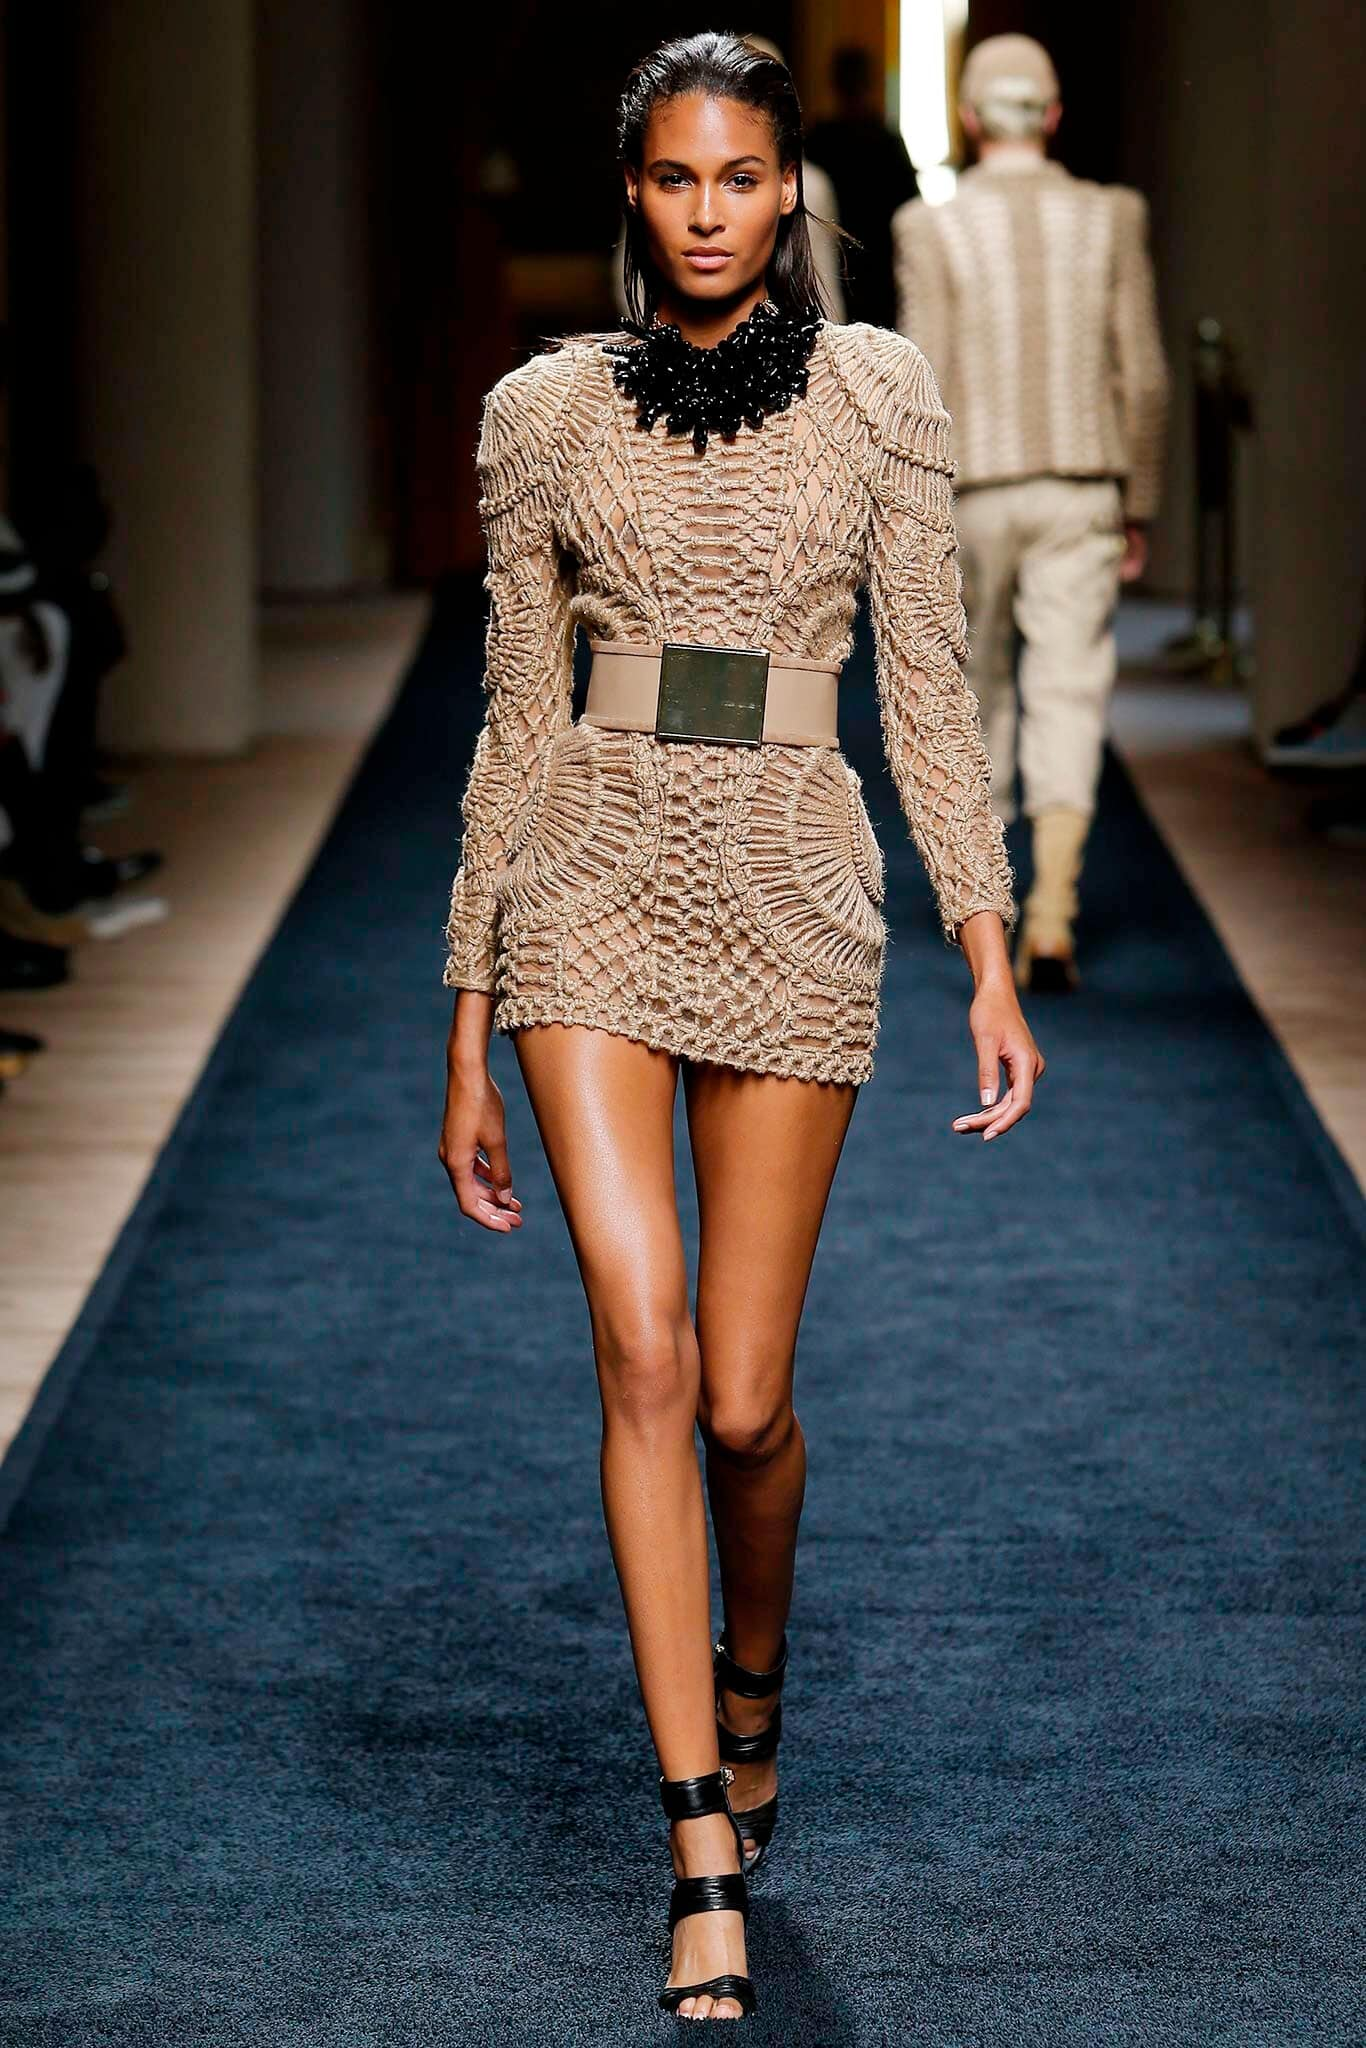 balmain-cindy-bruna-Runway-Magazine Cindy Bruna - French Top Model. by Runway Magazine